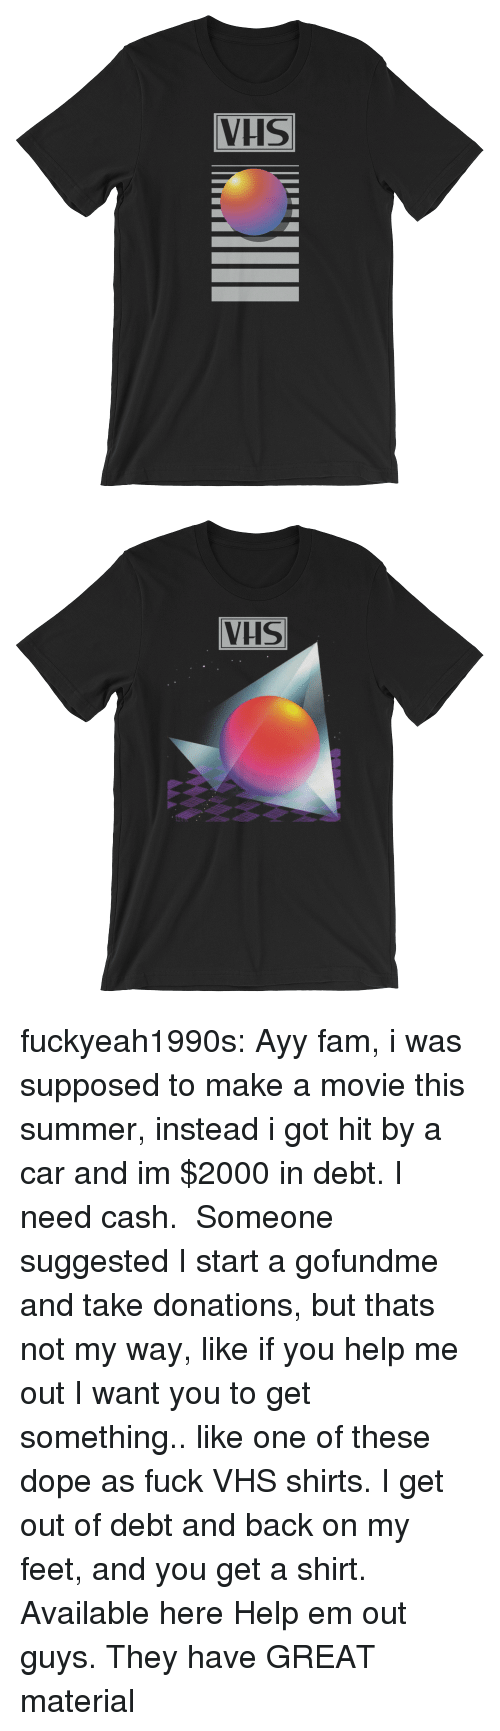 vhs: VHS   VHS fuckyeah1990s: Ayy fam, i was supposed to make a movie this summer, instead i got hit by a car and im $2000 in debt. I need cash.  Someone suggested I start a gofundme and take donations, but thats not my way, like if you help me out I want you to get something.. like one of these dope as fuck VHS shirts. I get out of debt and back on my feet, and you get a shirt.   Available here   Help em out guys. They have GREAT material